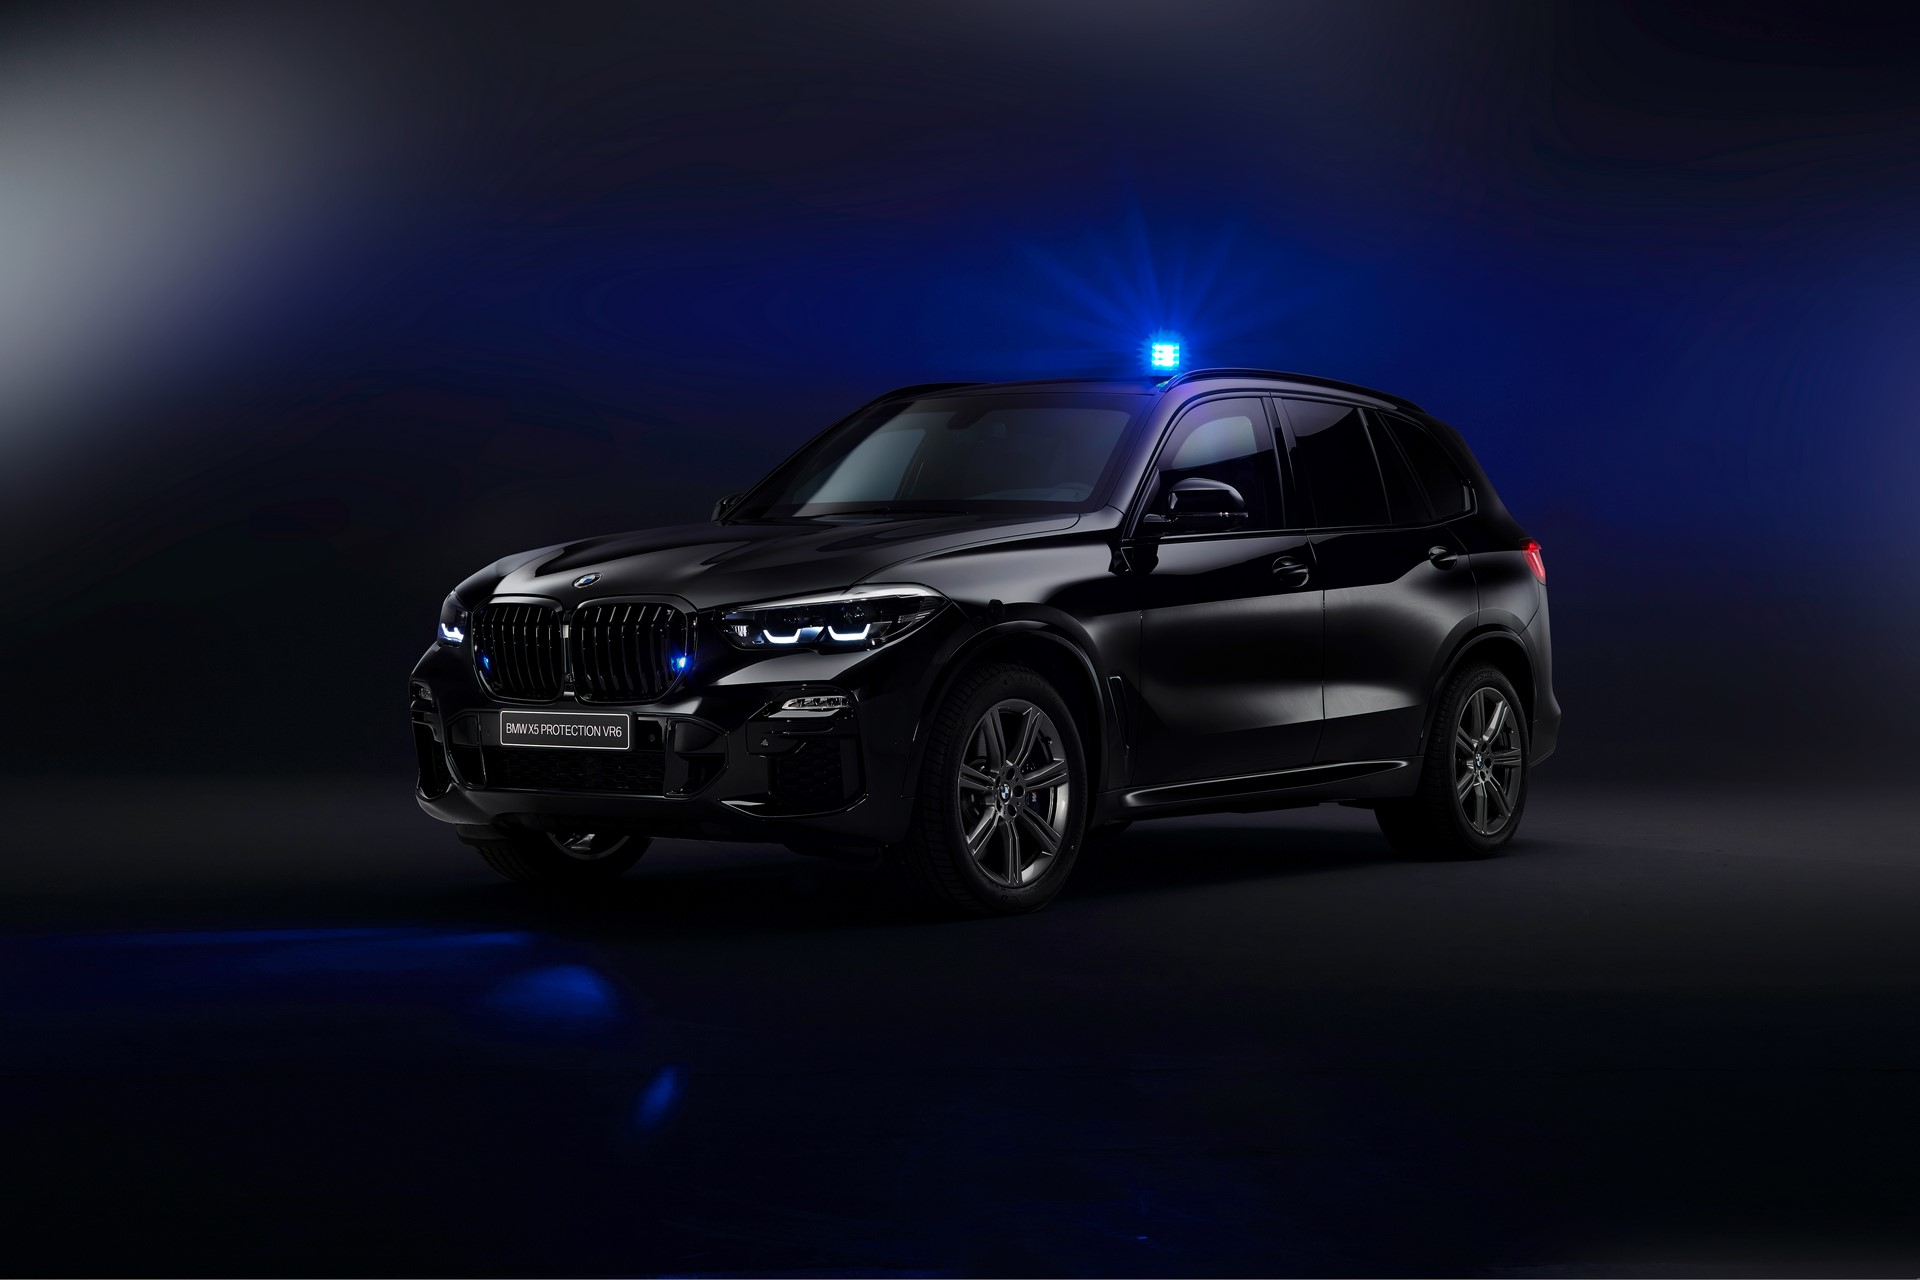 BMW-X5-Protection-VR6-2